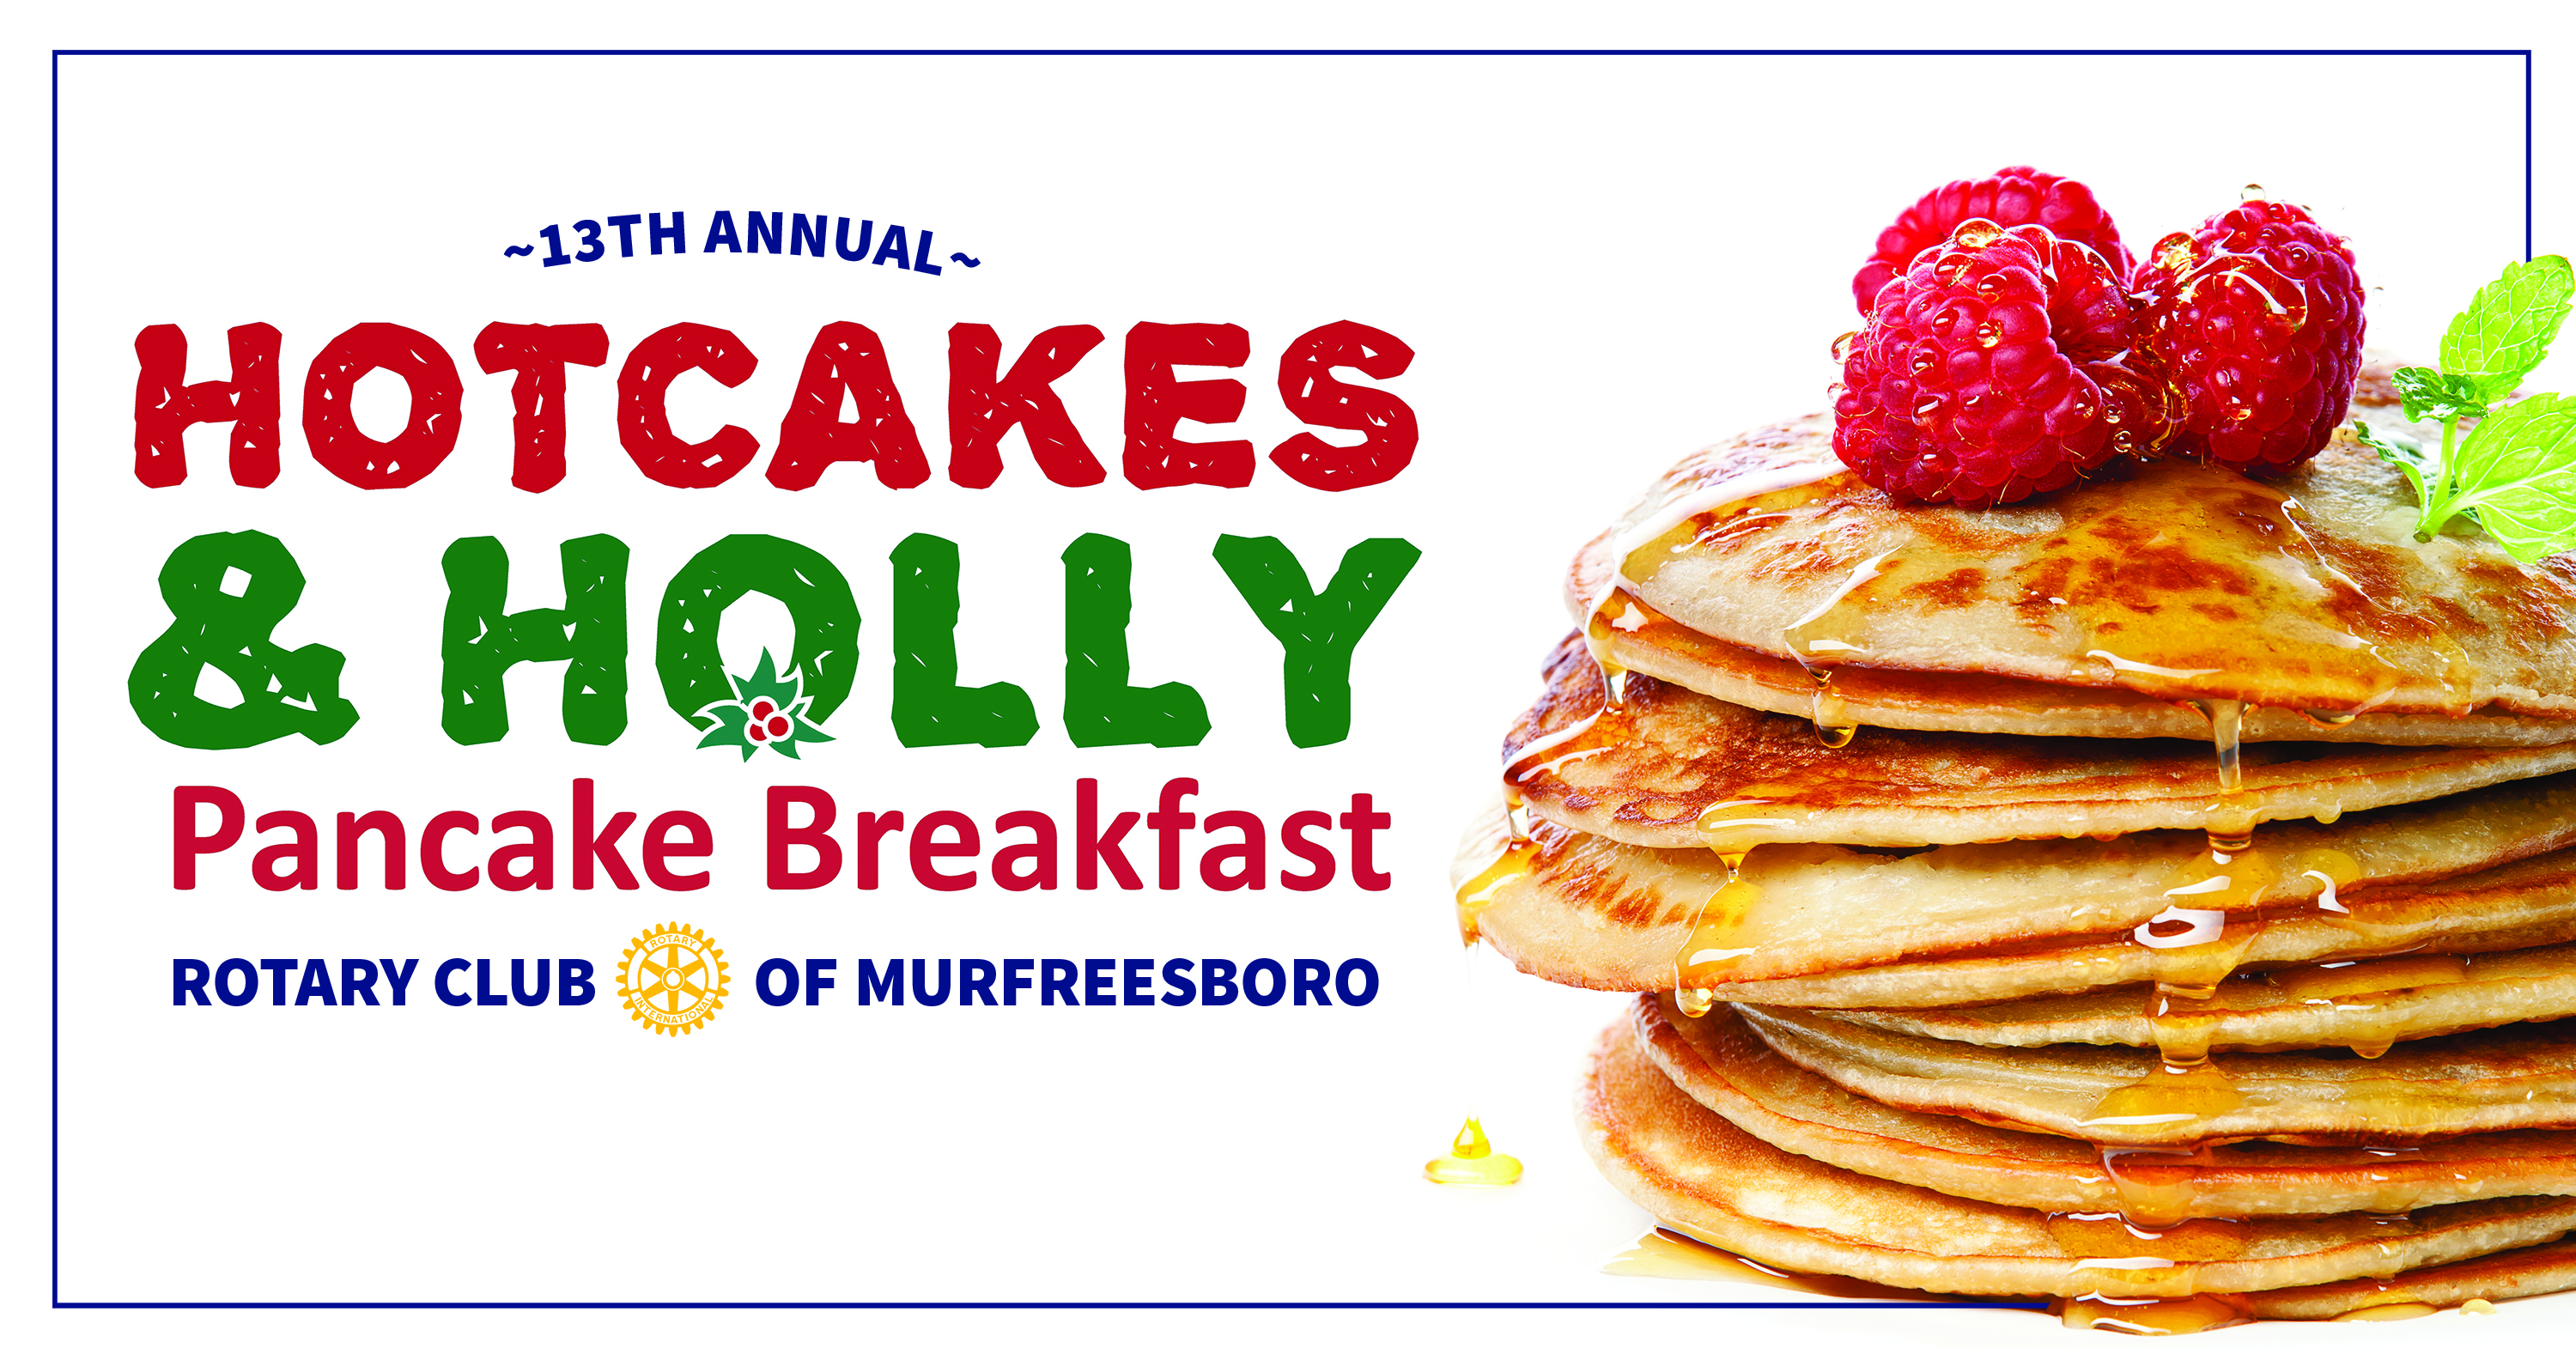 Annual Hotcakes and Holly fundraising breakfast